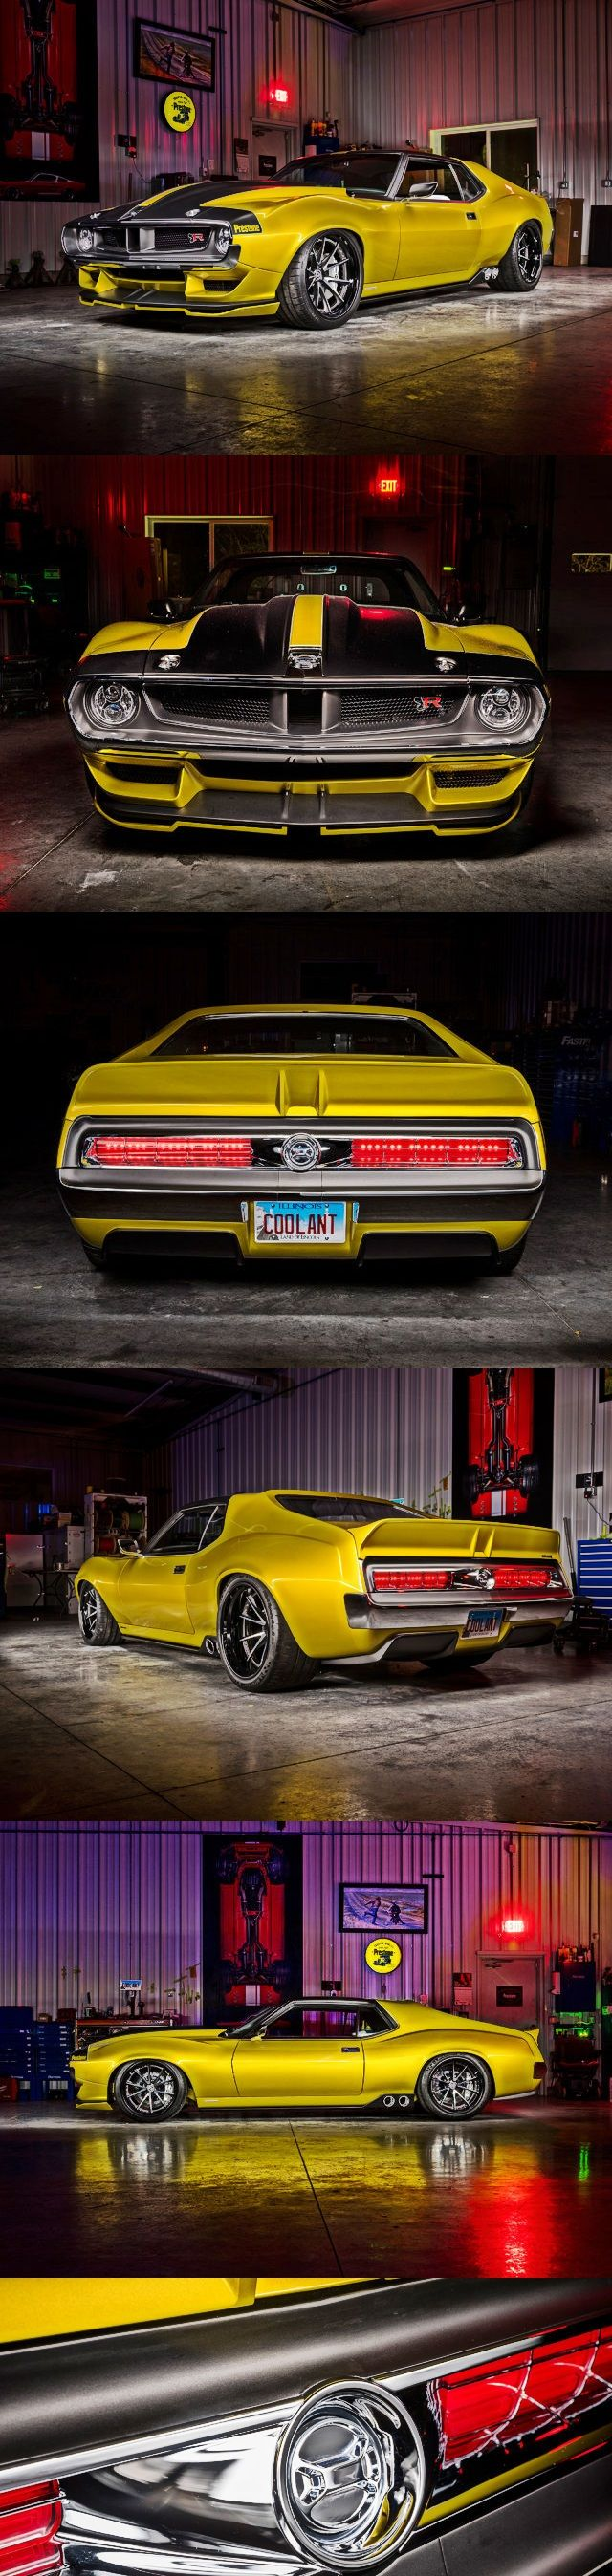 5555 best I ♡ US Muscle Cars images on Pinterest | American ...